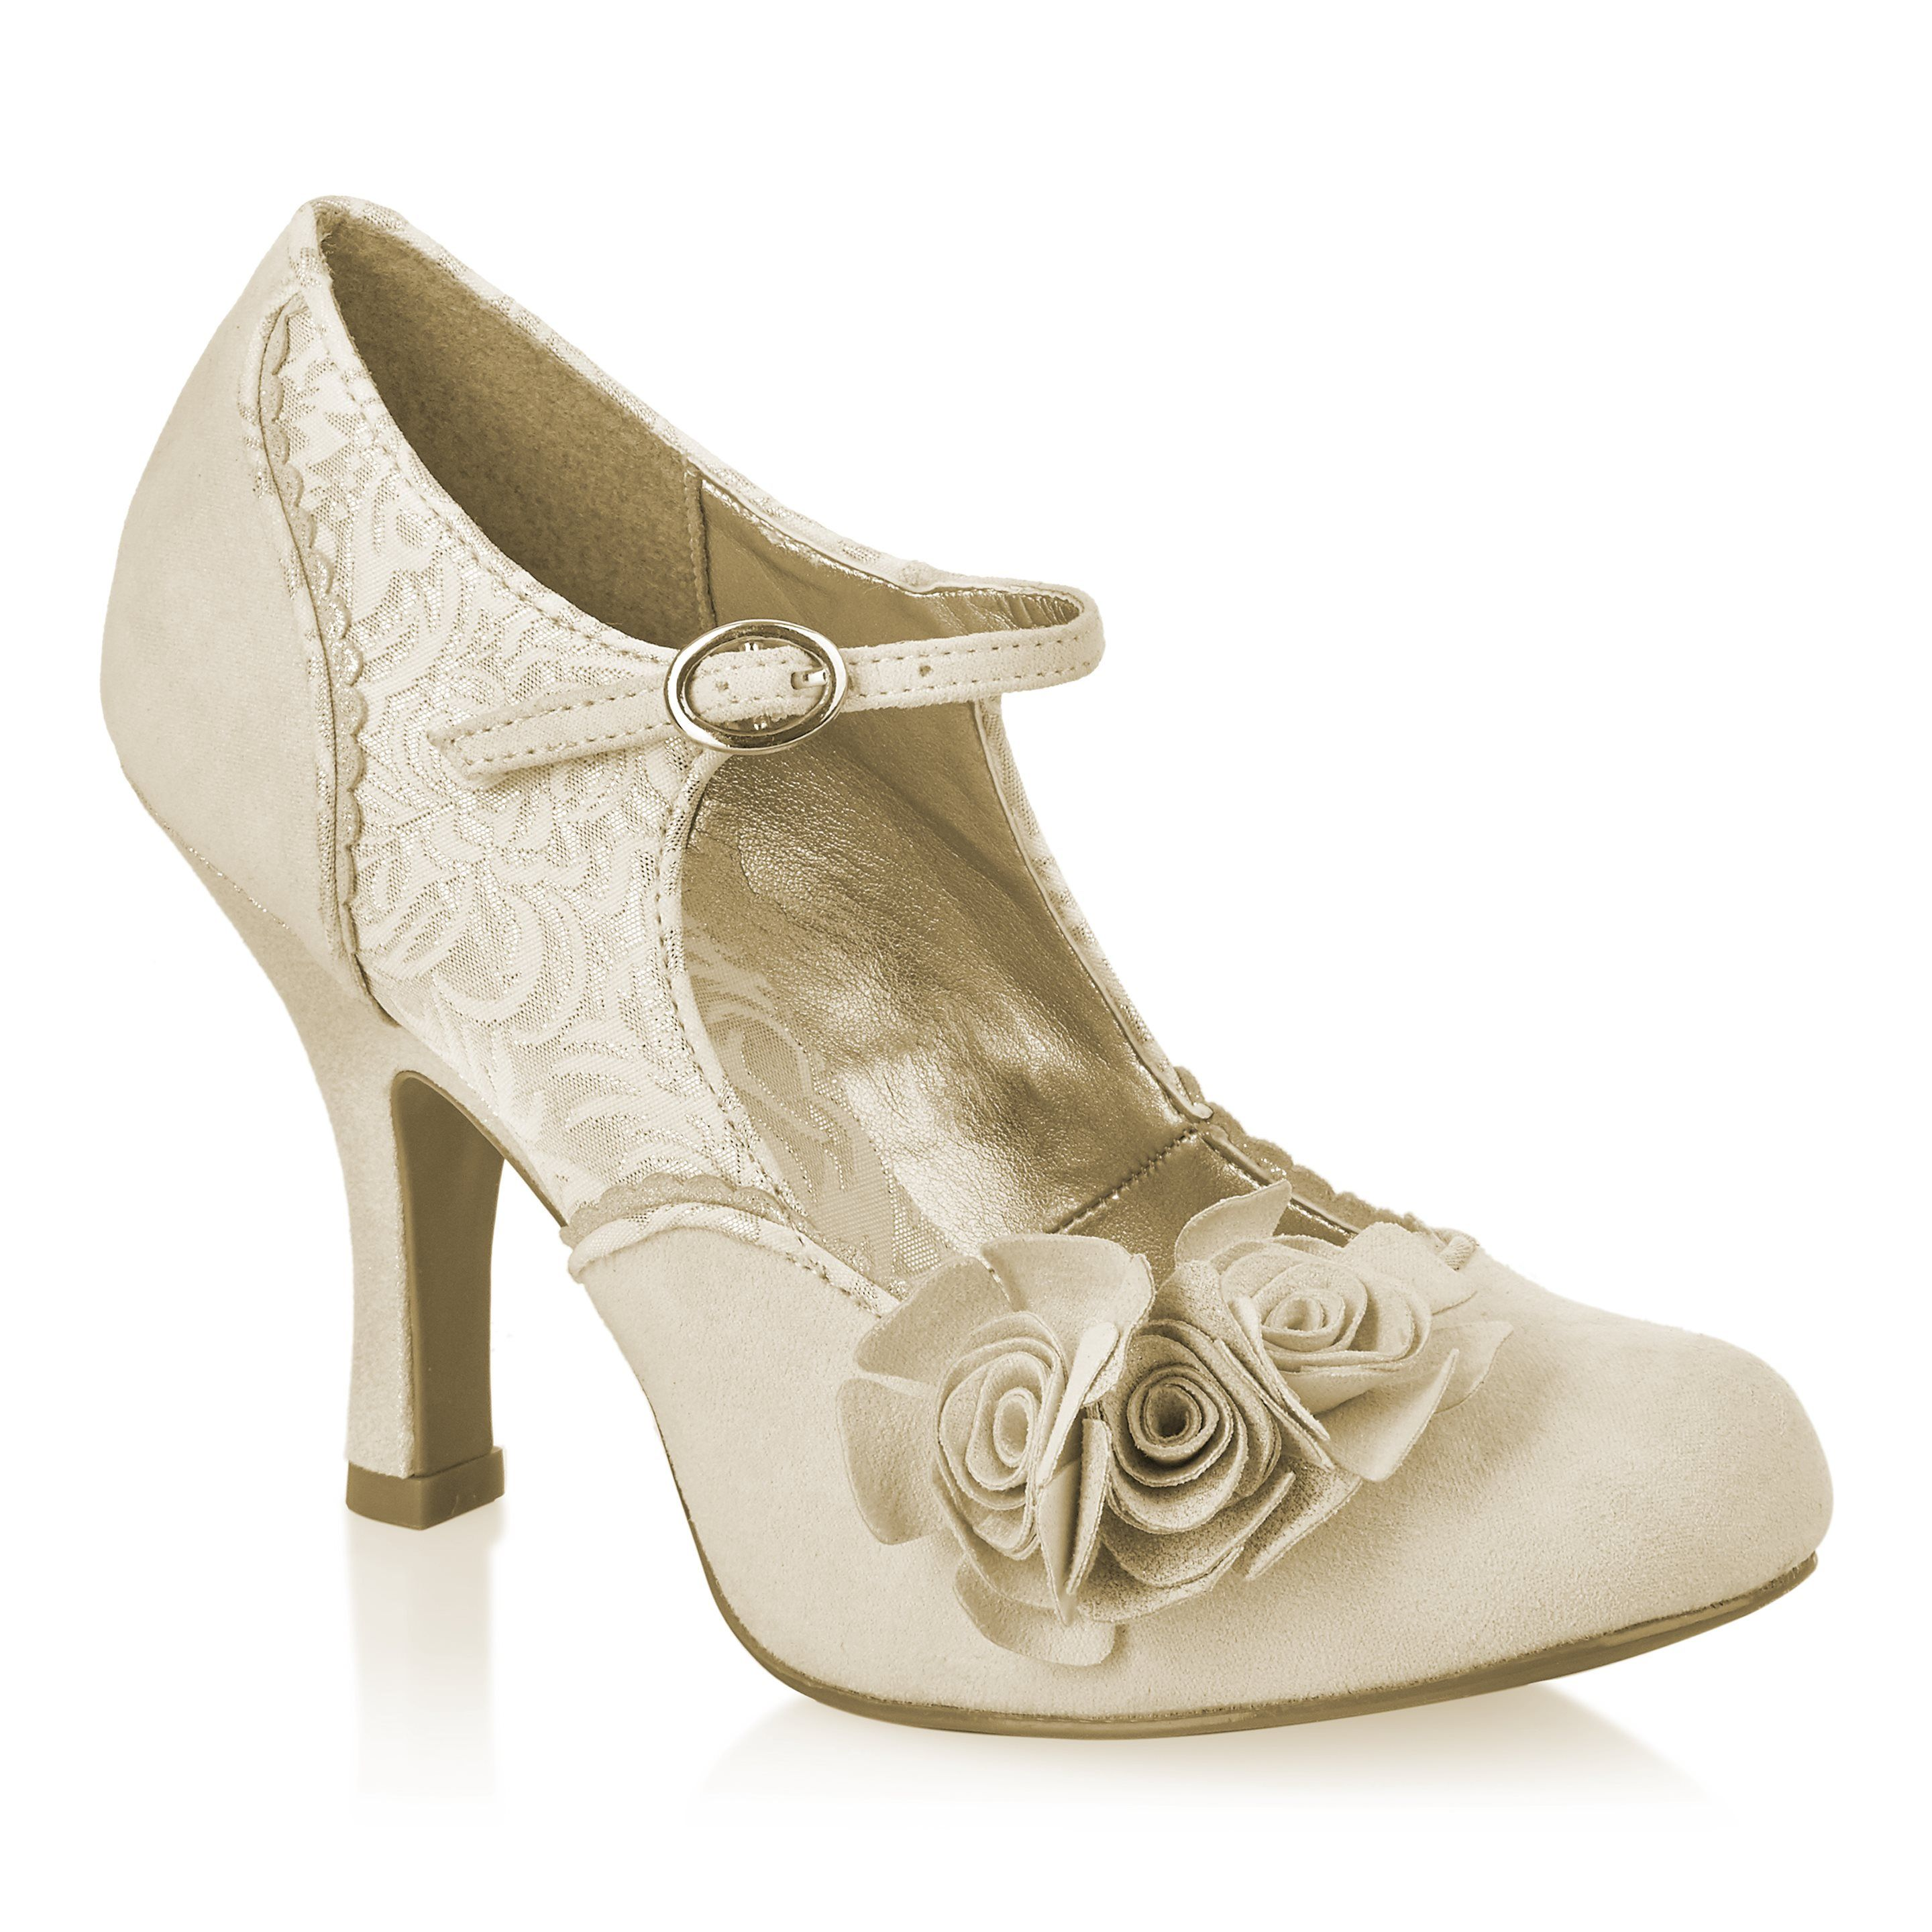 Look what I found on PurpleTag.ie: Ruby Shoo - Emily Cream/Gold Shoes